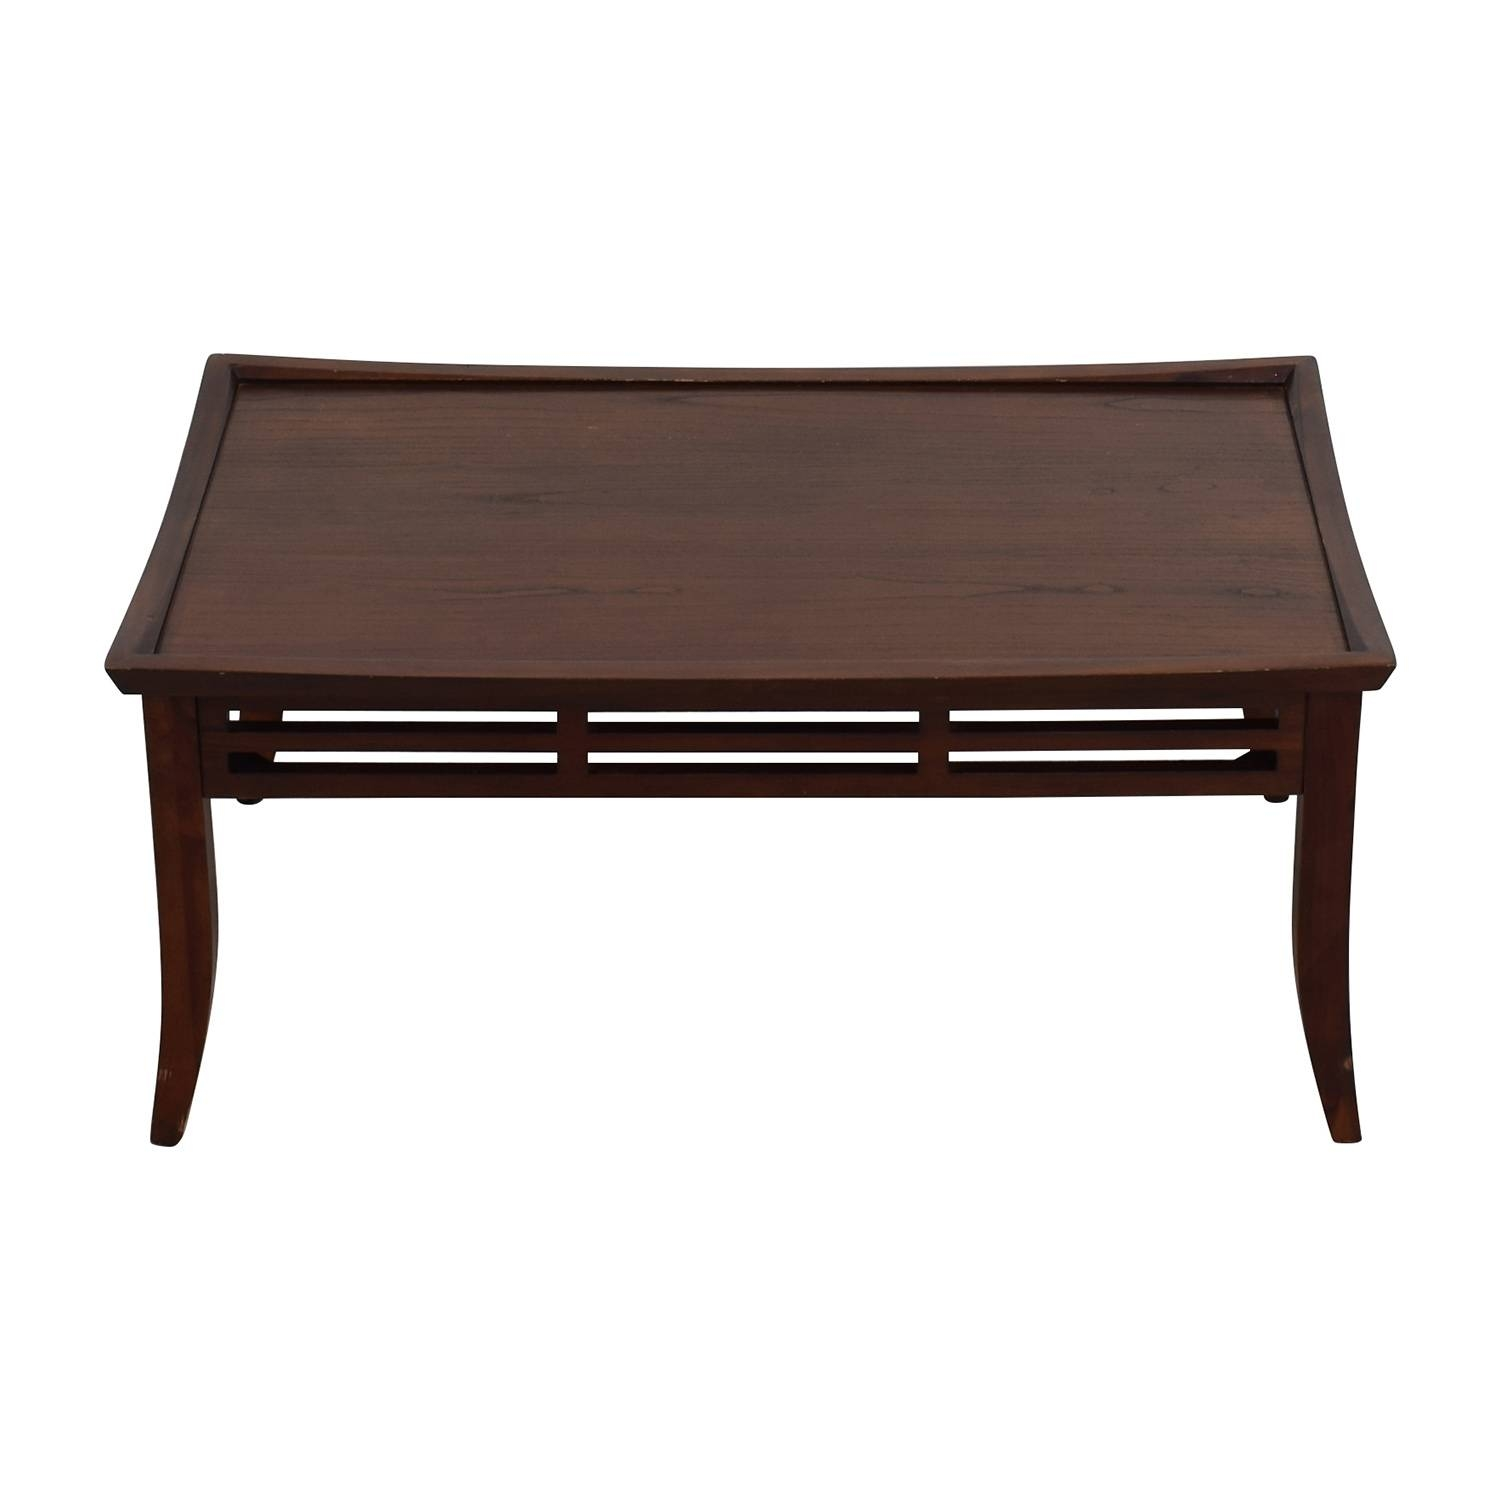 56% Off   Light Brown Coffee Table With Bottom Shelf / Tables Throughout Dark Brown Coffee Tables (Photo 16 of 30)